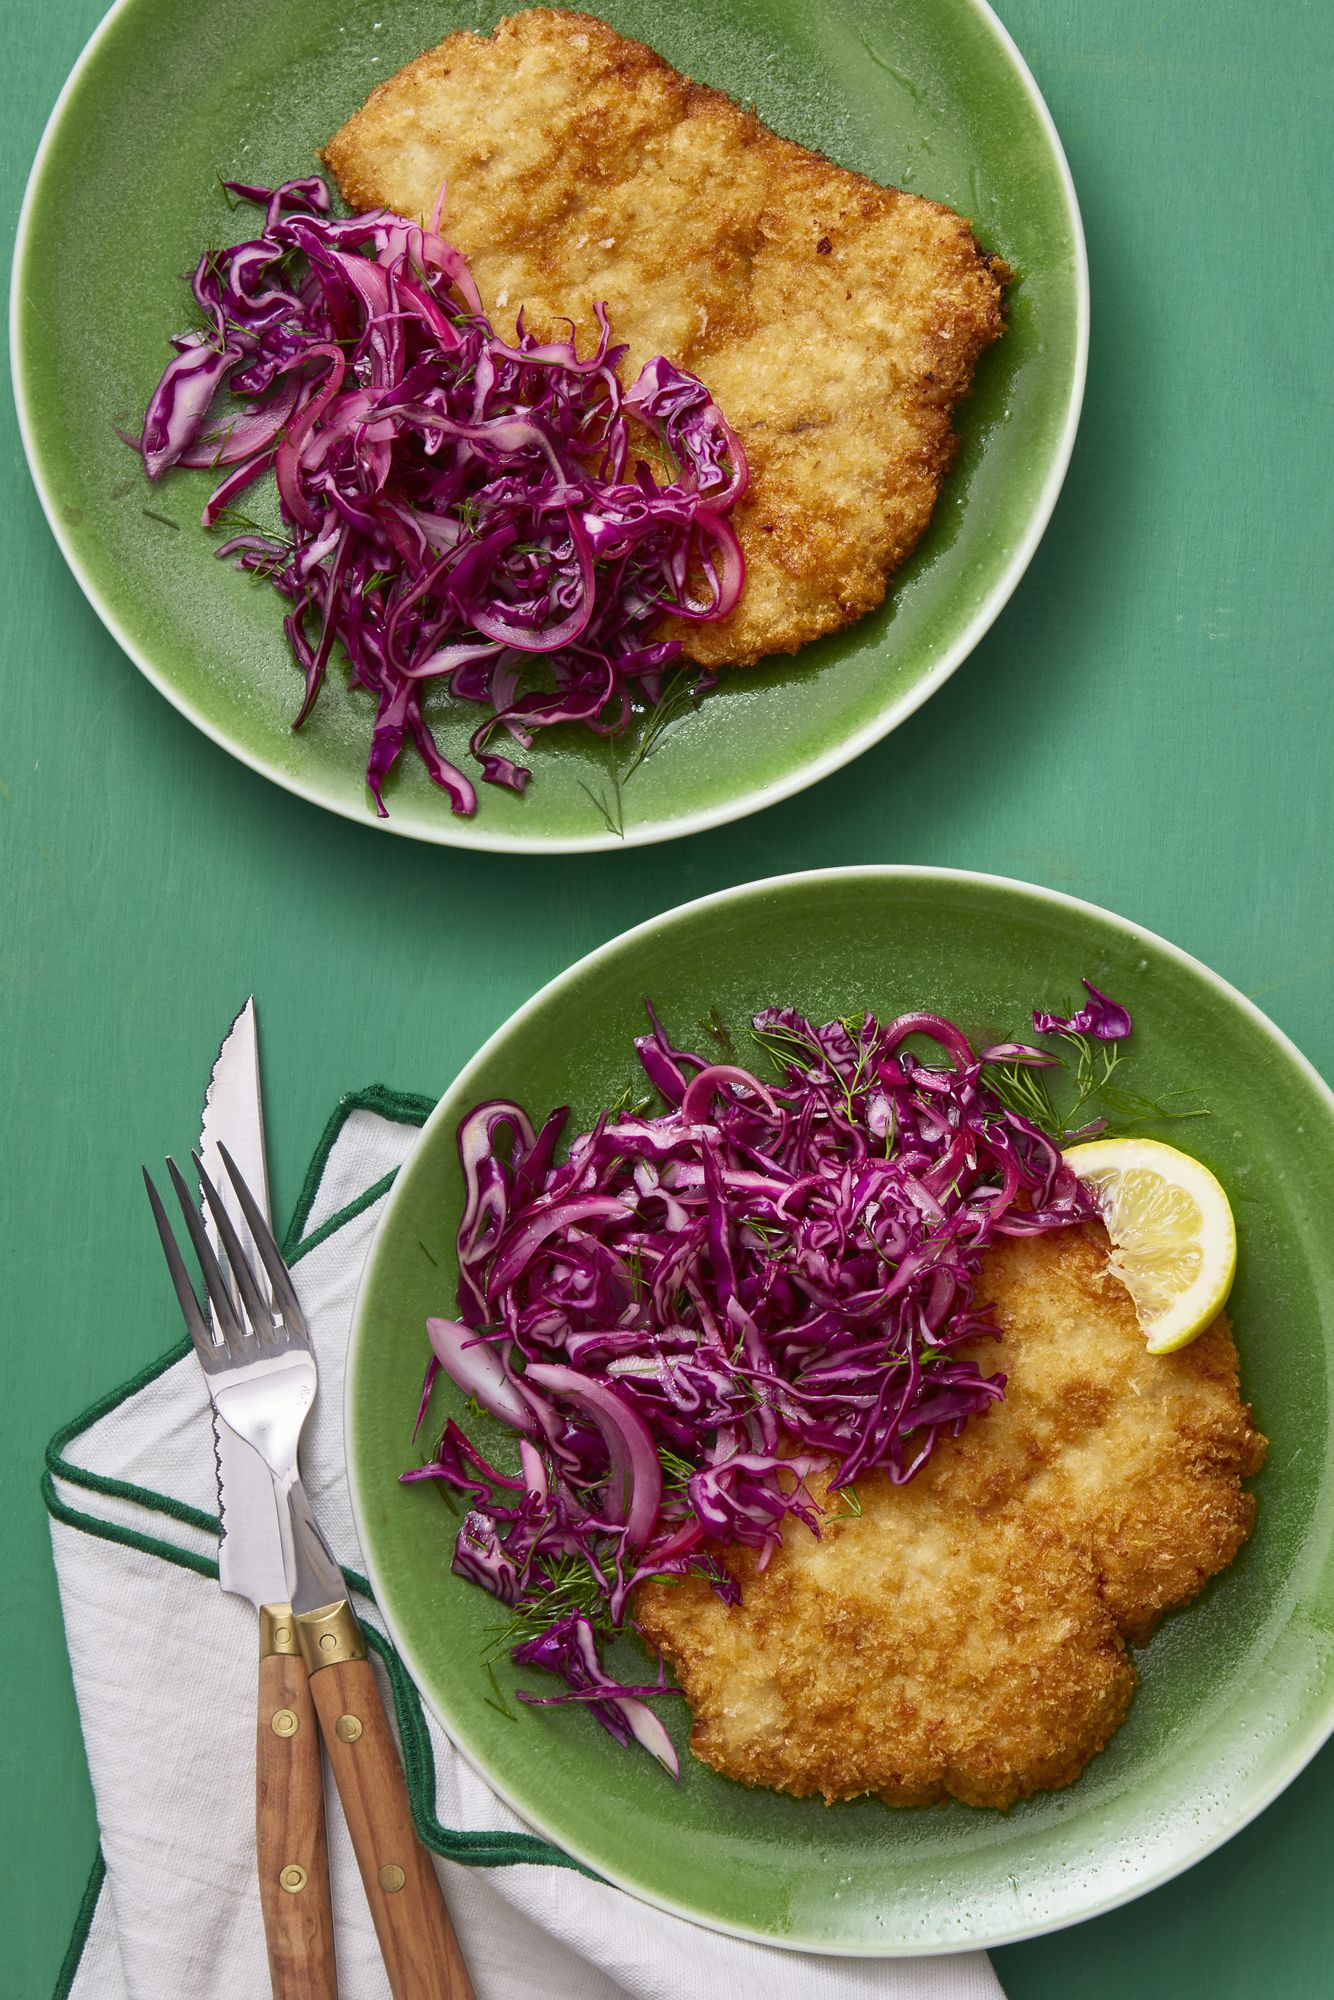 pork schnitzel with red cabbage and carraway salad